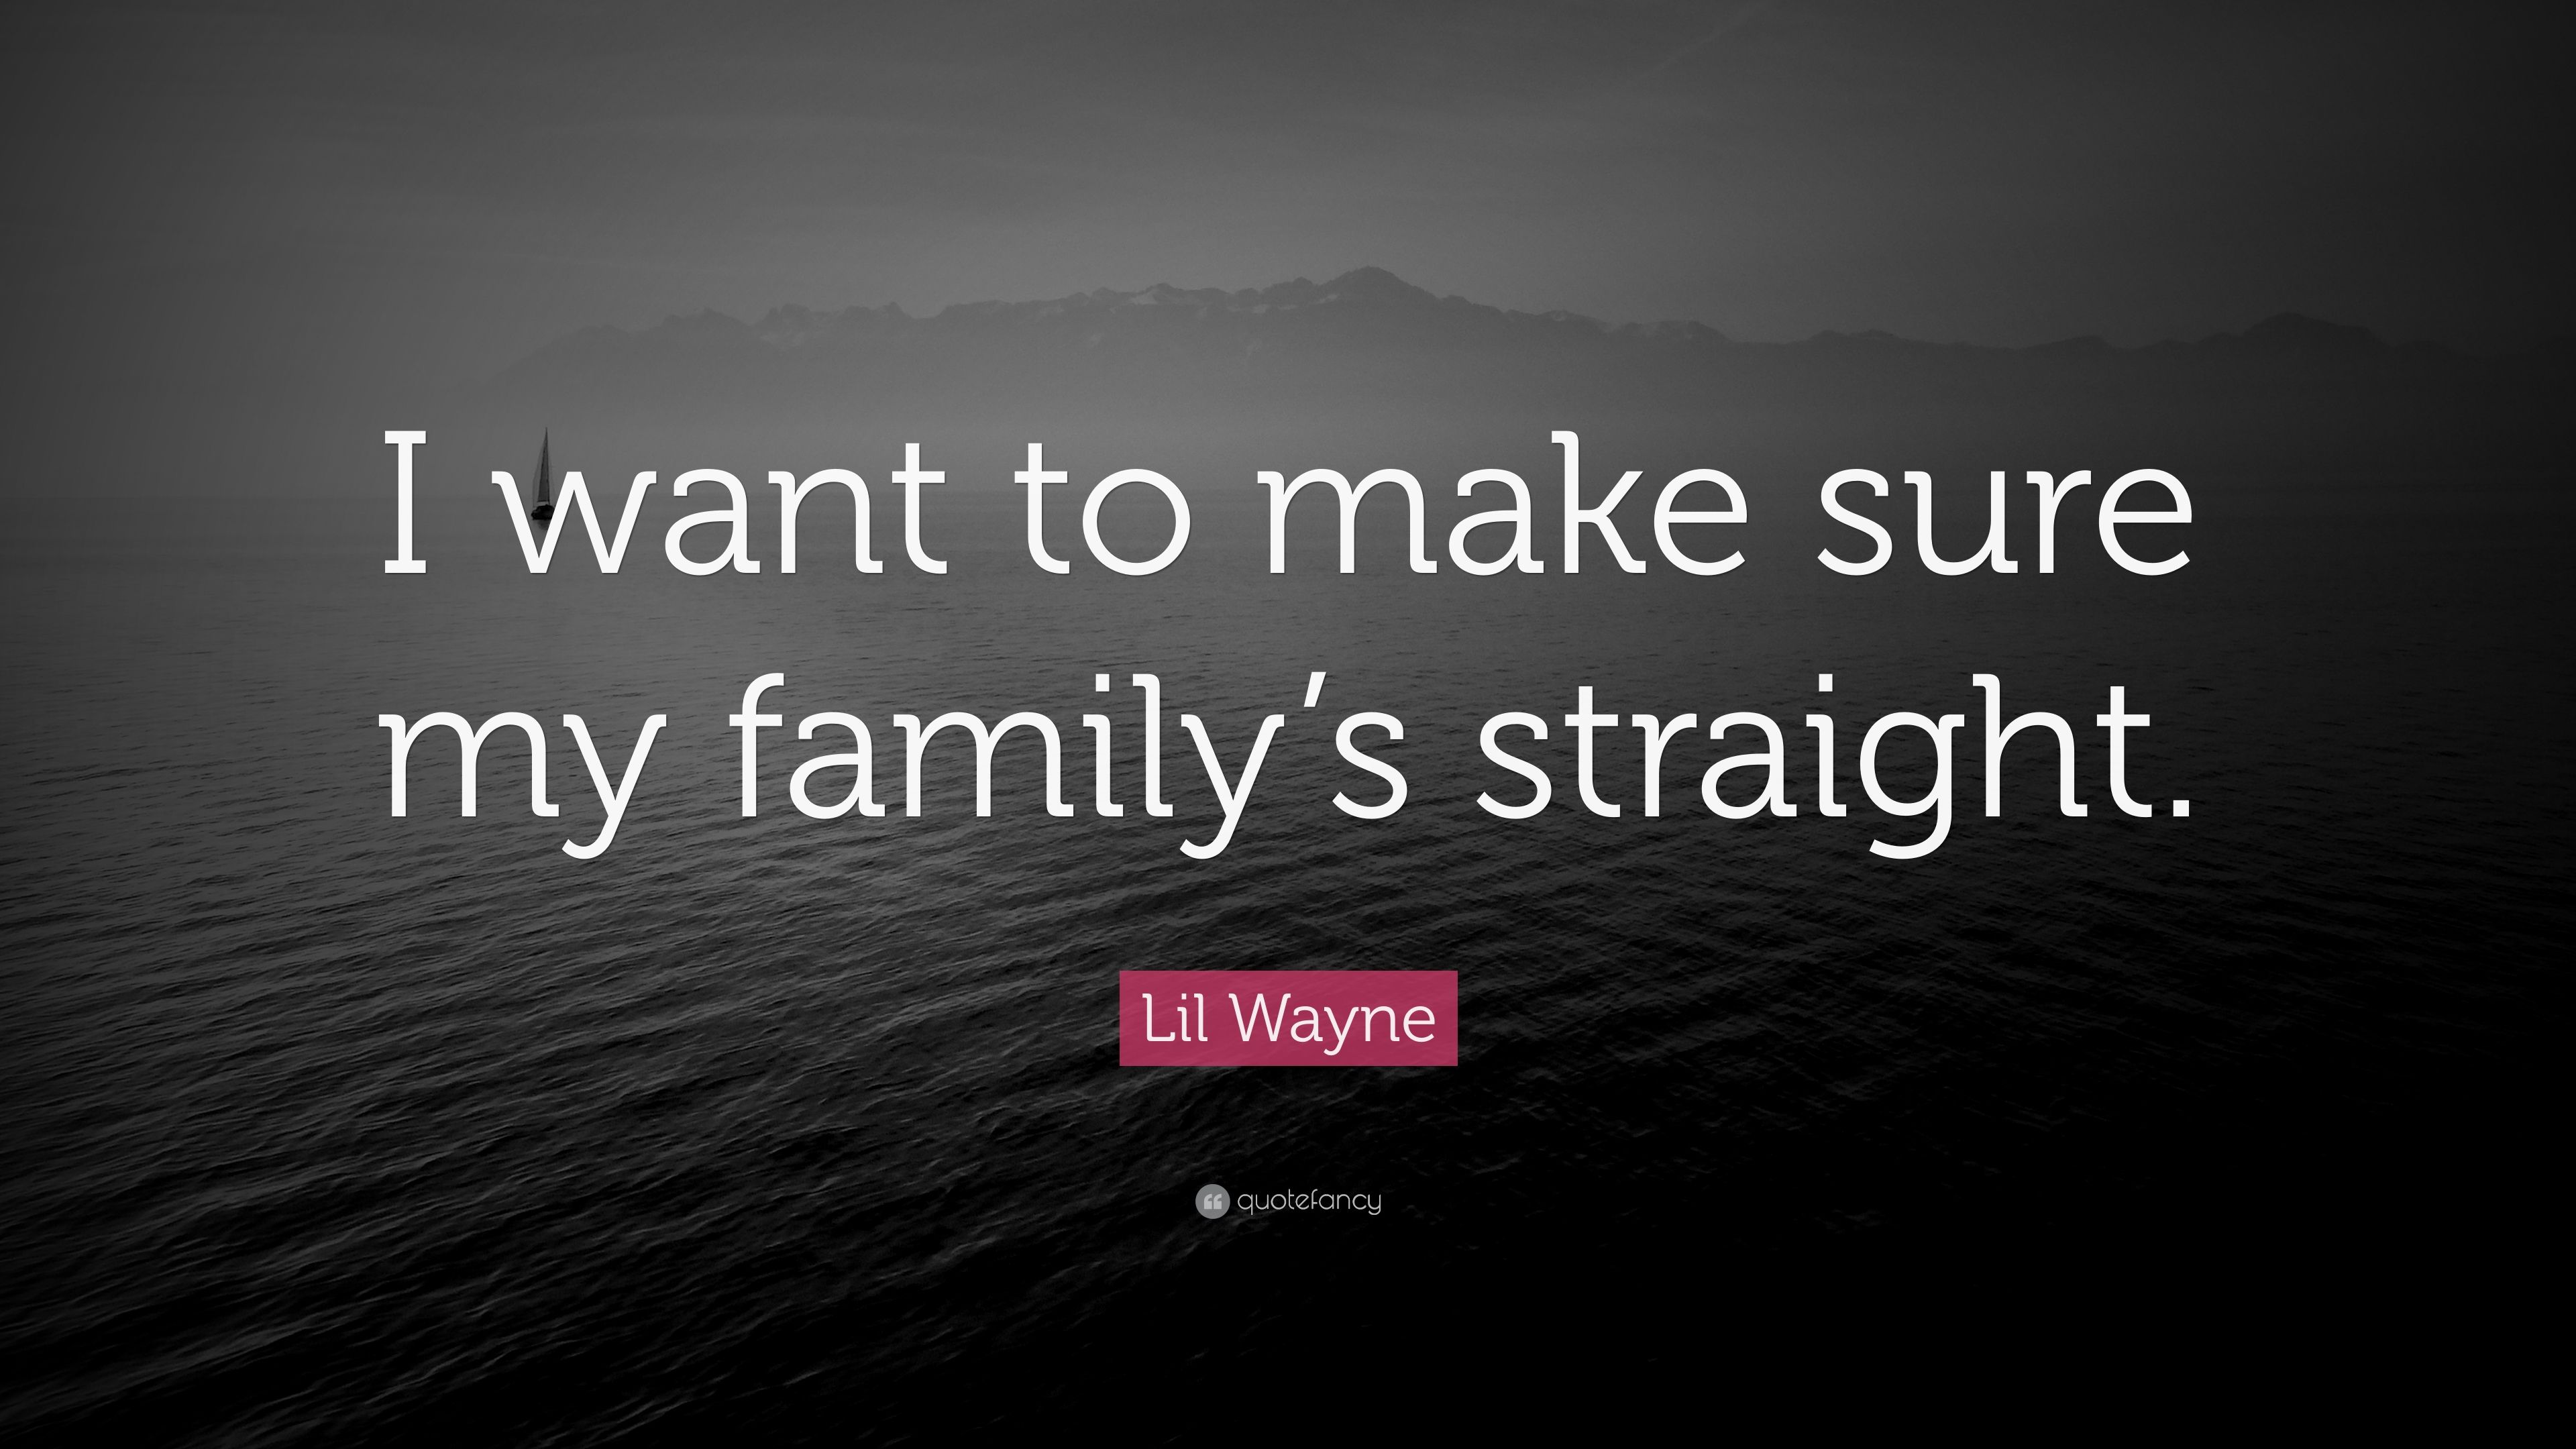 Lil wayne quote i want to make sure my familys straight